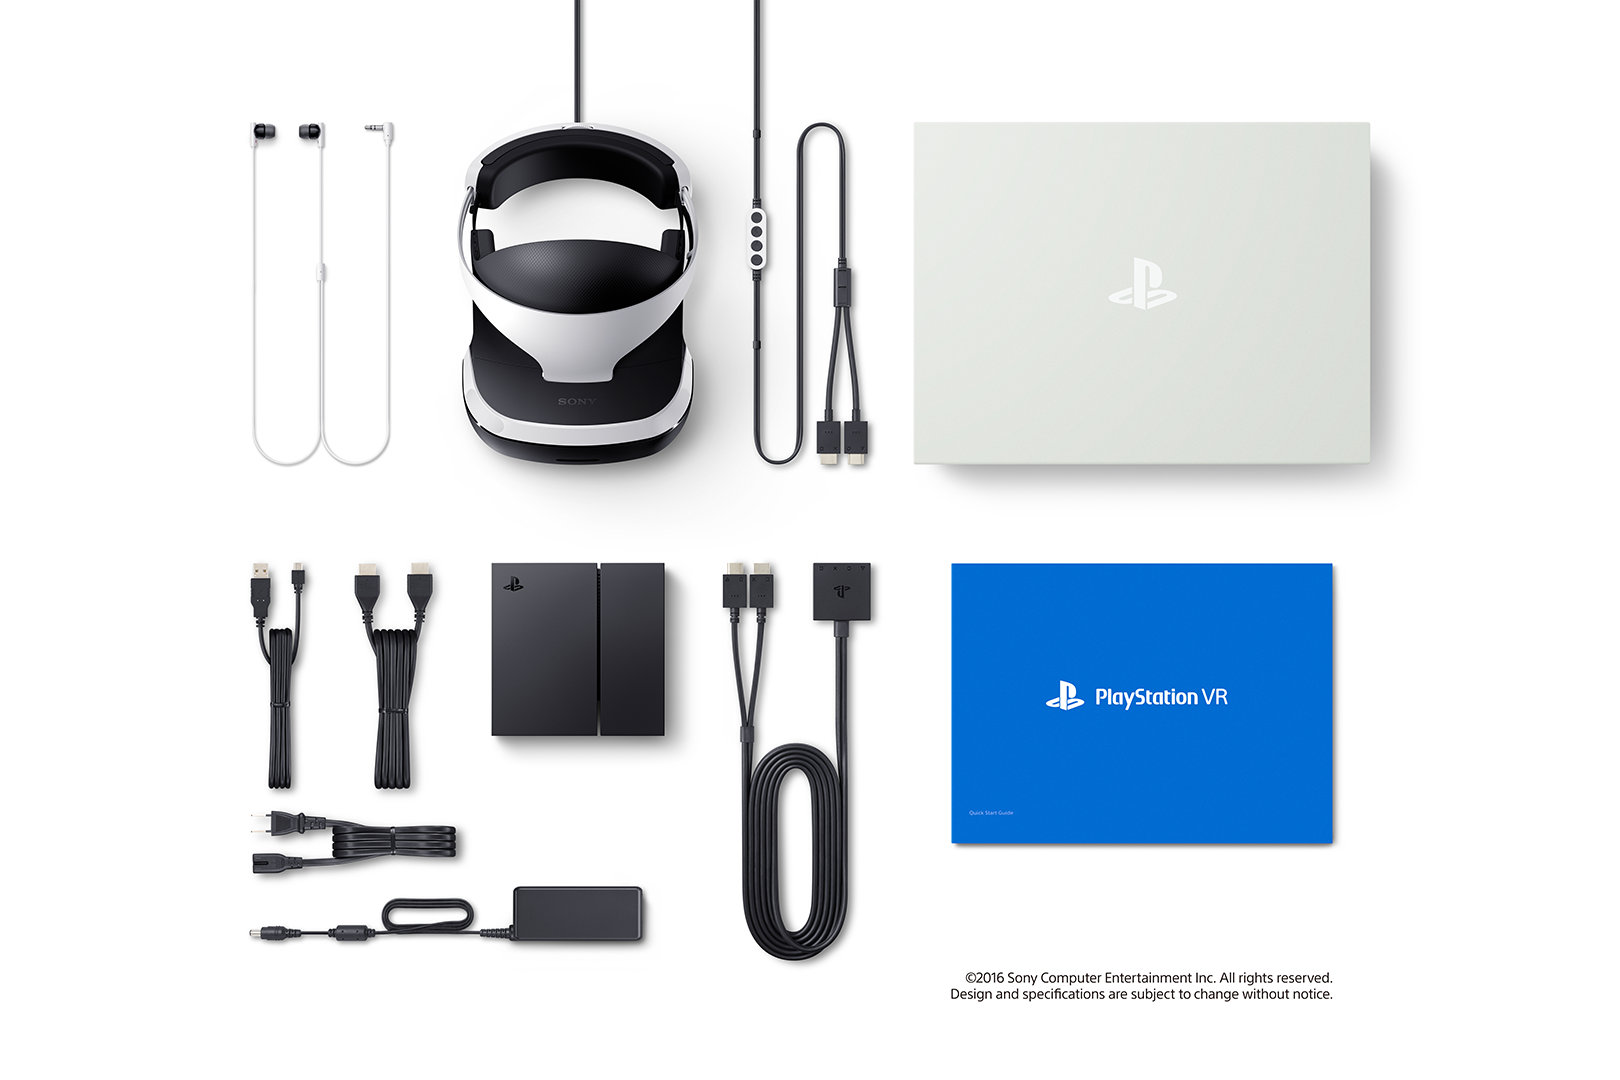 PlayStation VR Headset Update